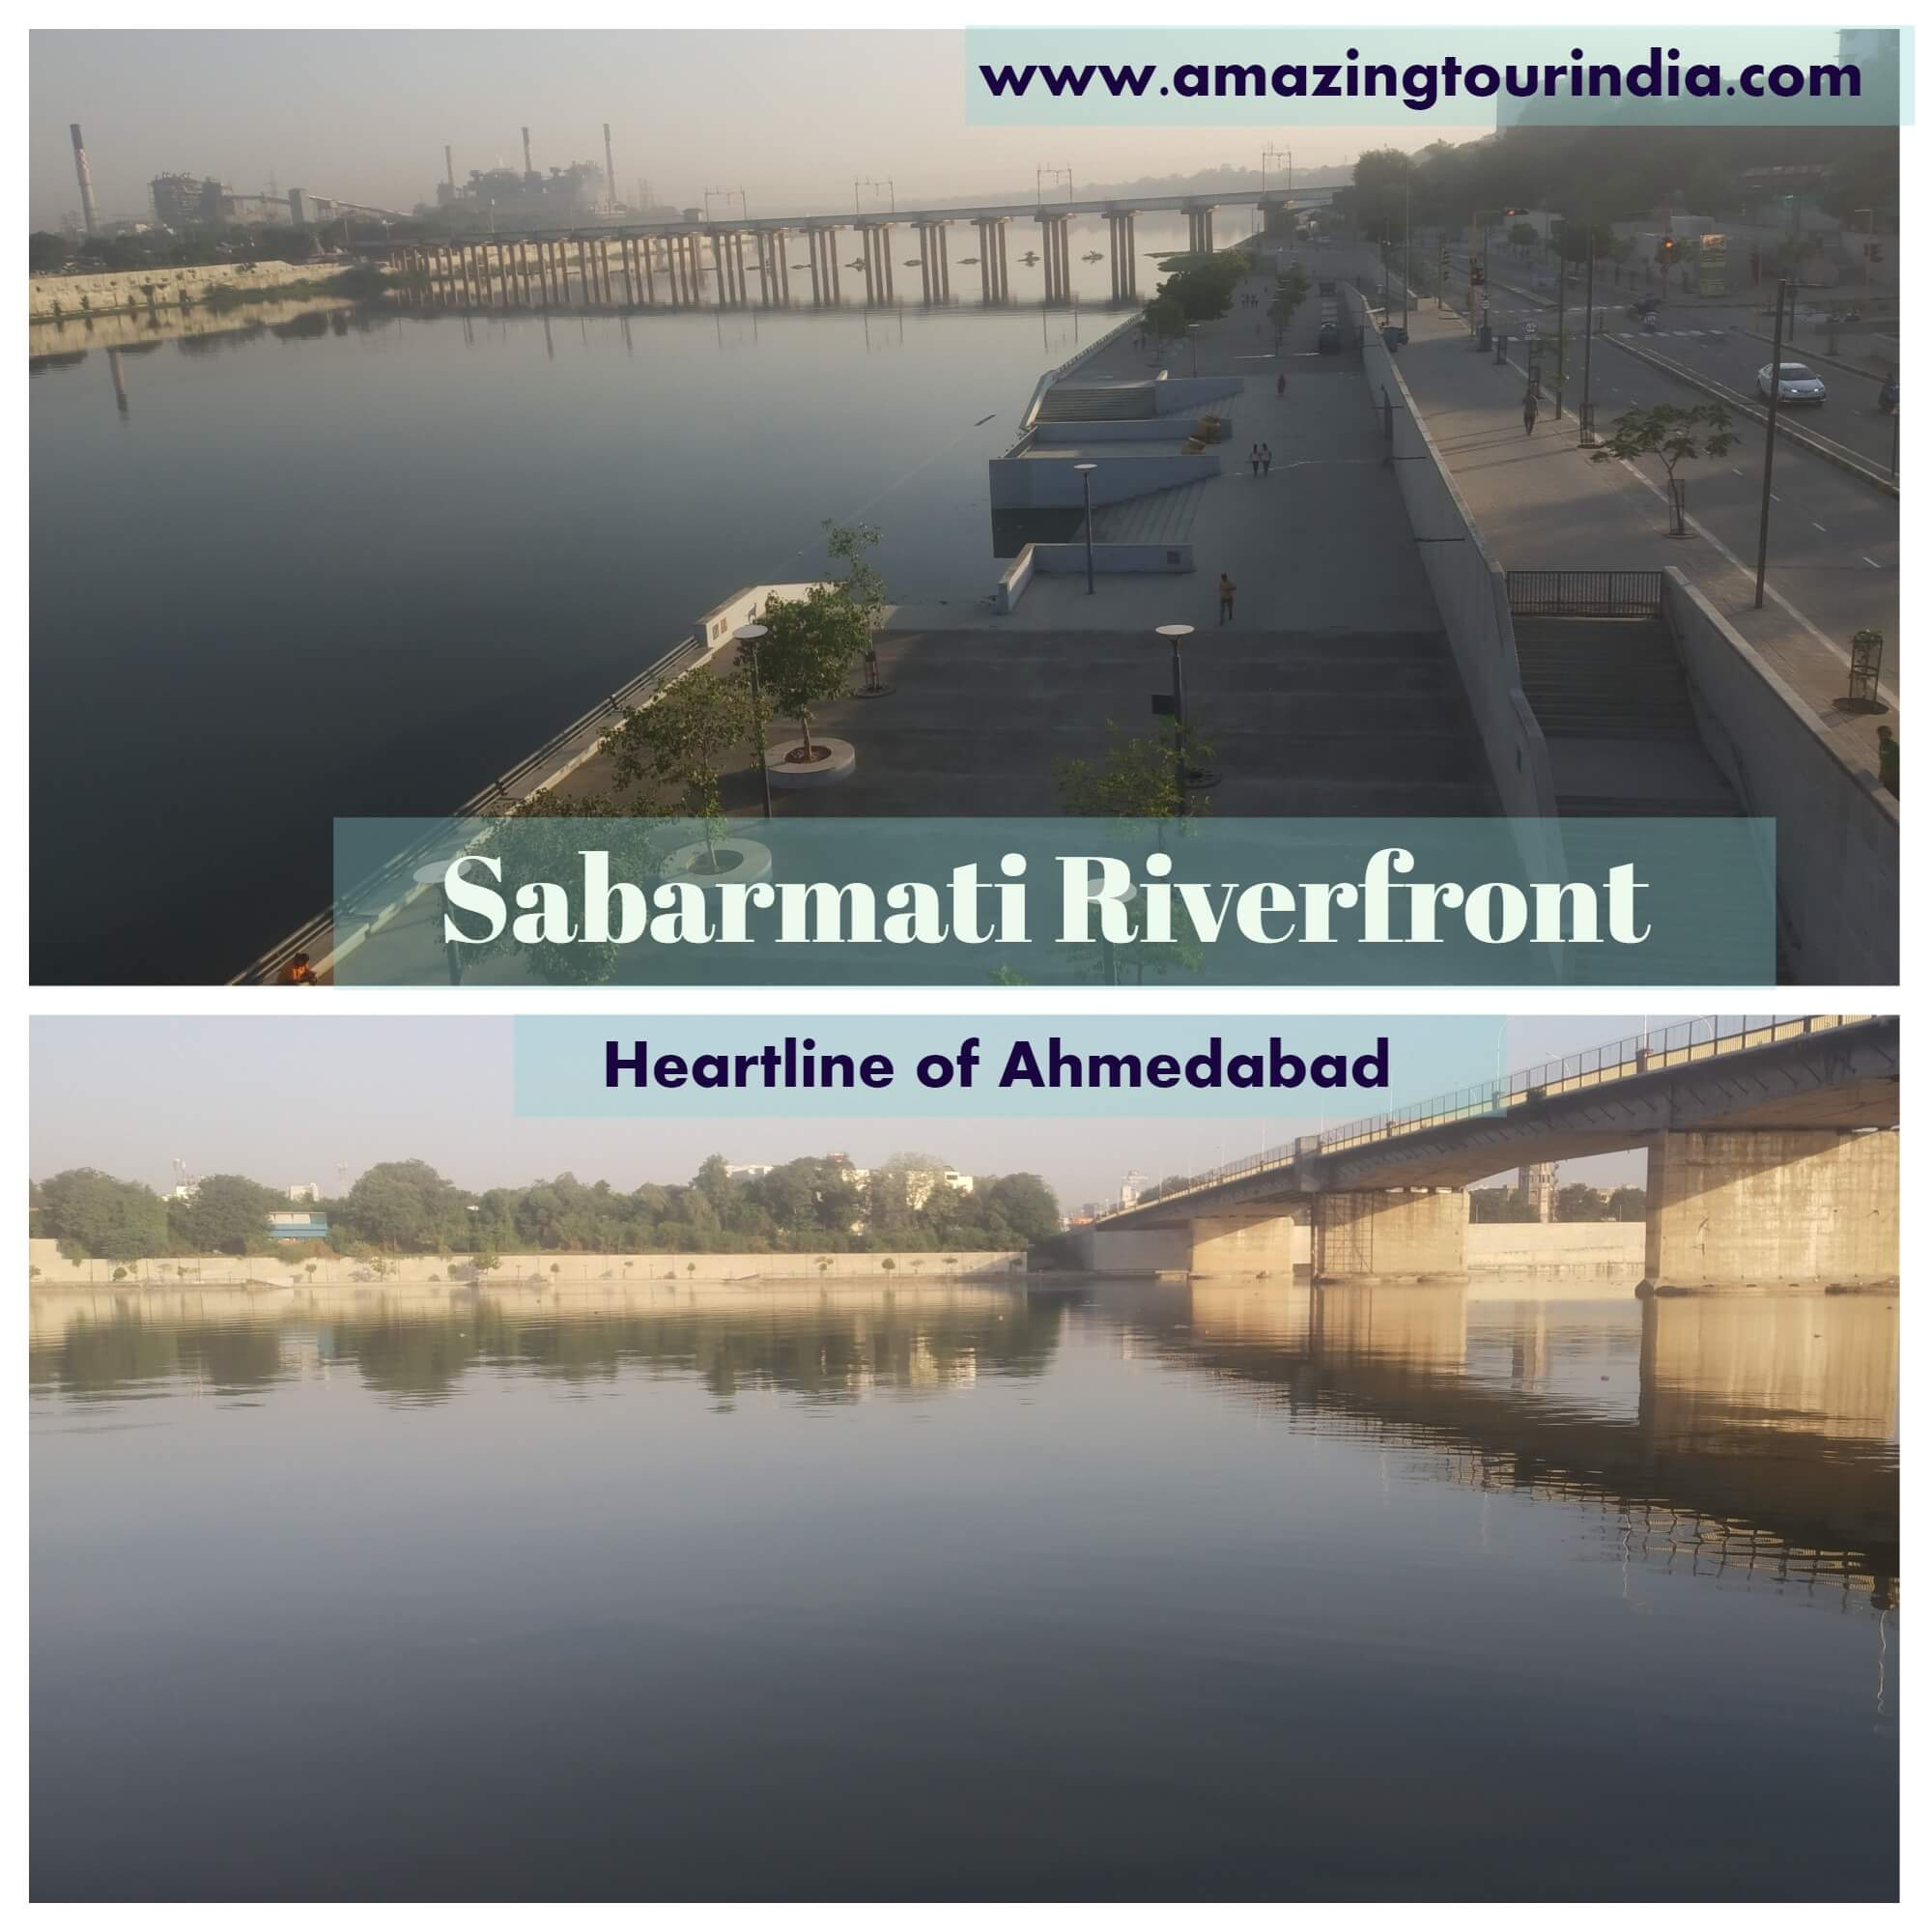 Sabarmati Riverfront - a Heartline of Ahmedabad City